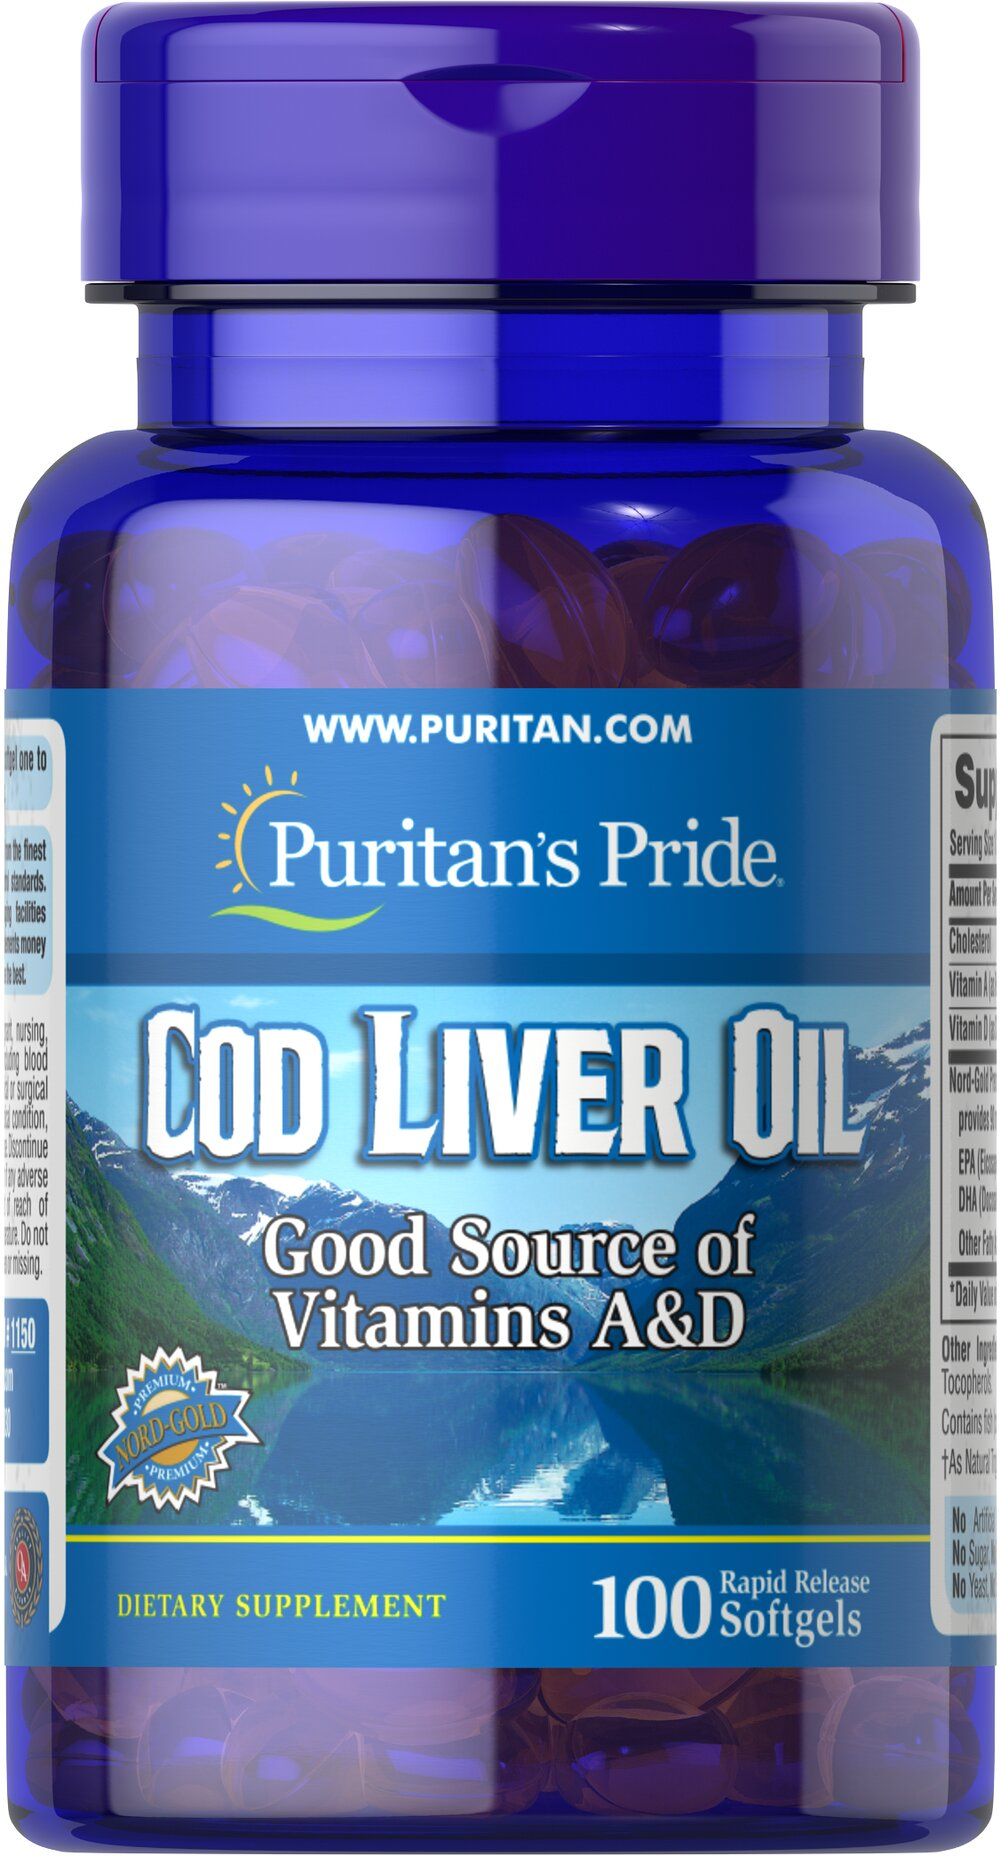 Cod Liver Oil 415 mg Thumbnail Alternate Bottle View